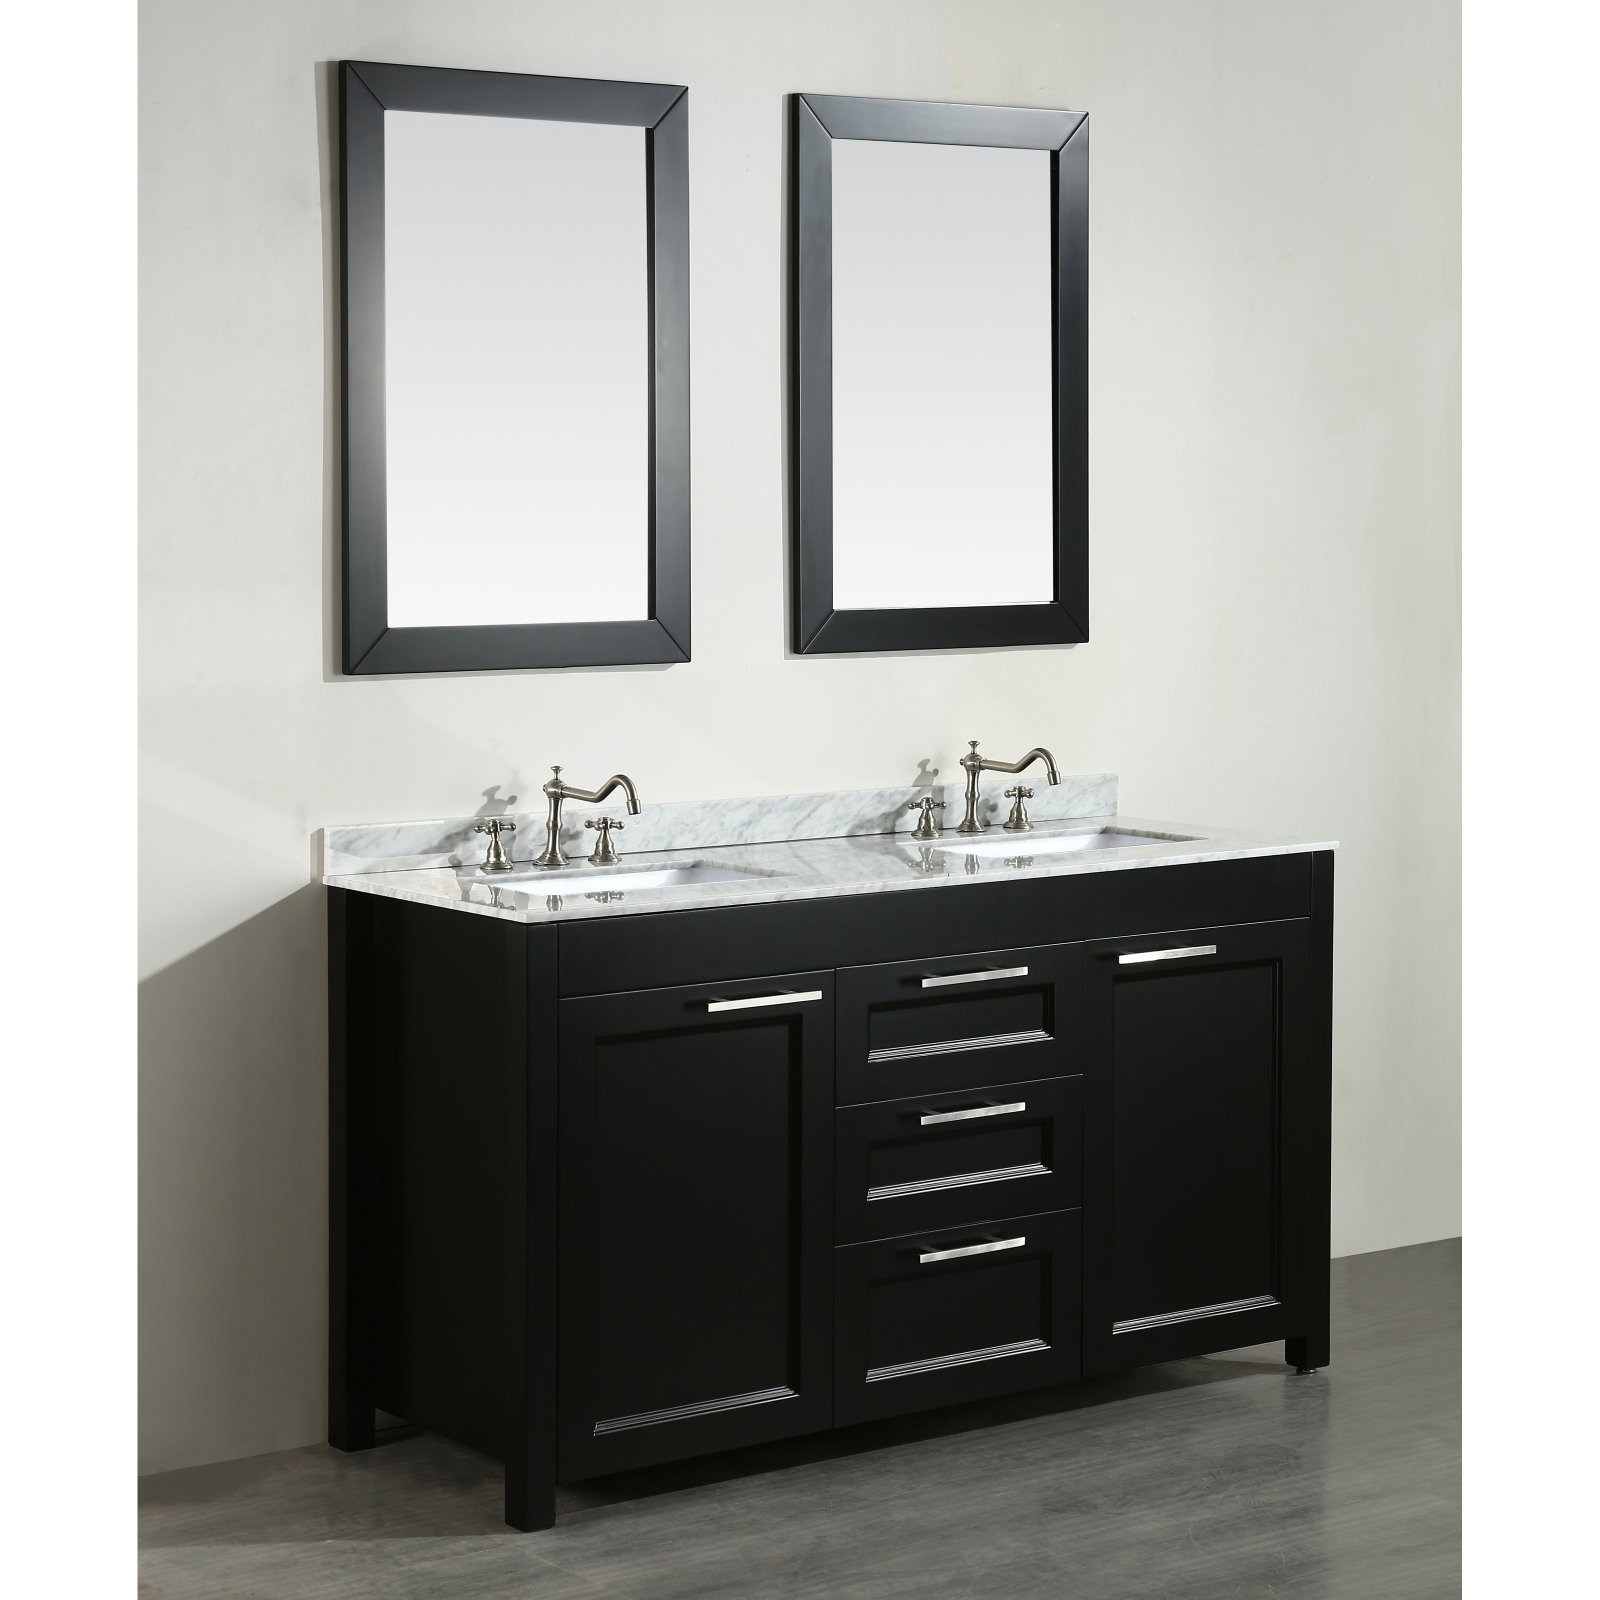 60'' Bosconi SB-267 Contemporary Double Vanity